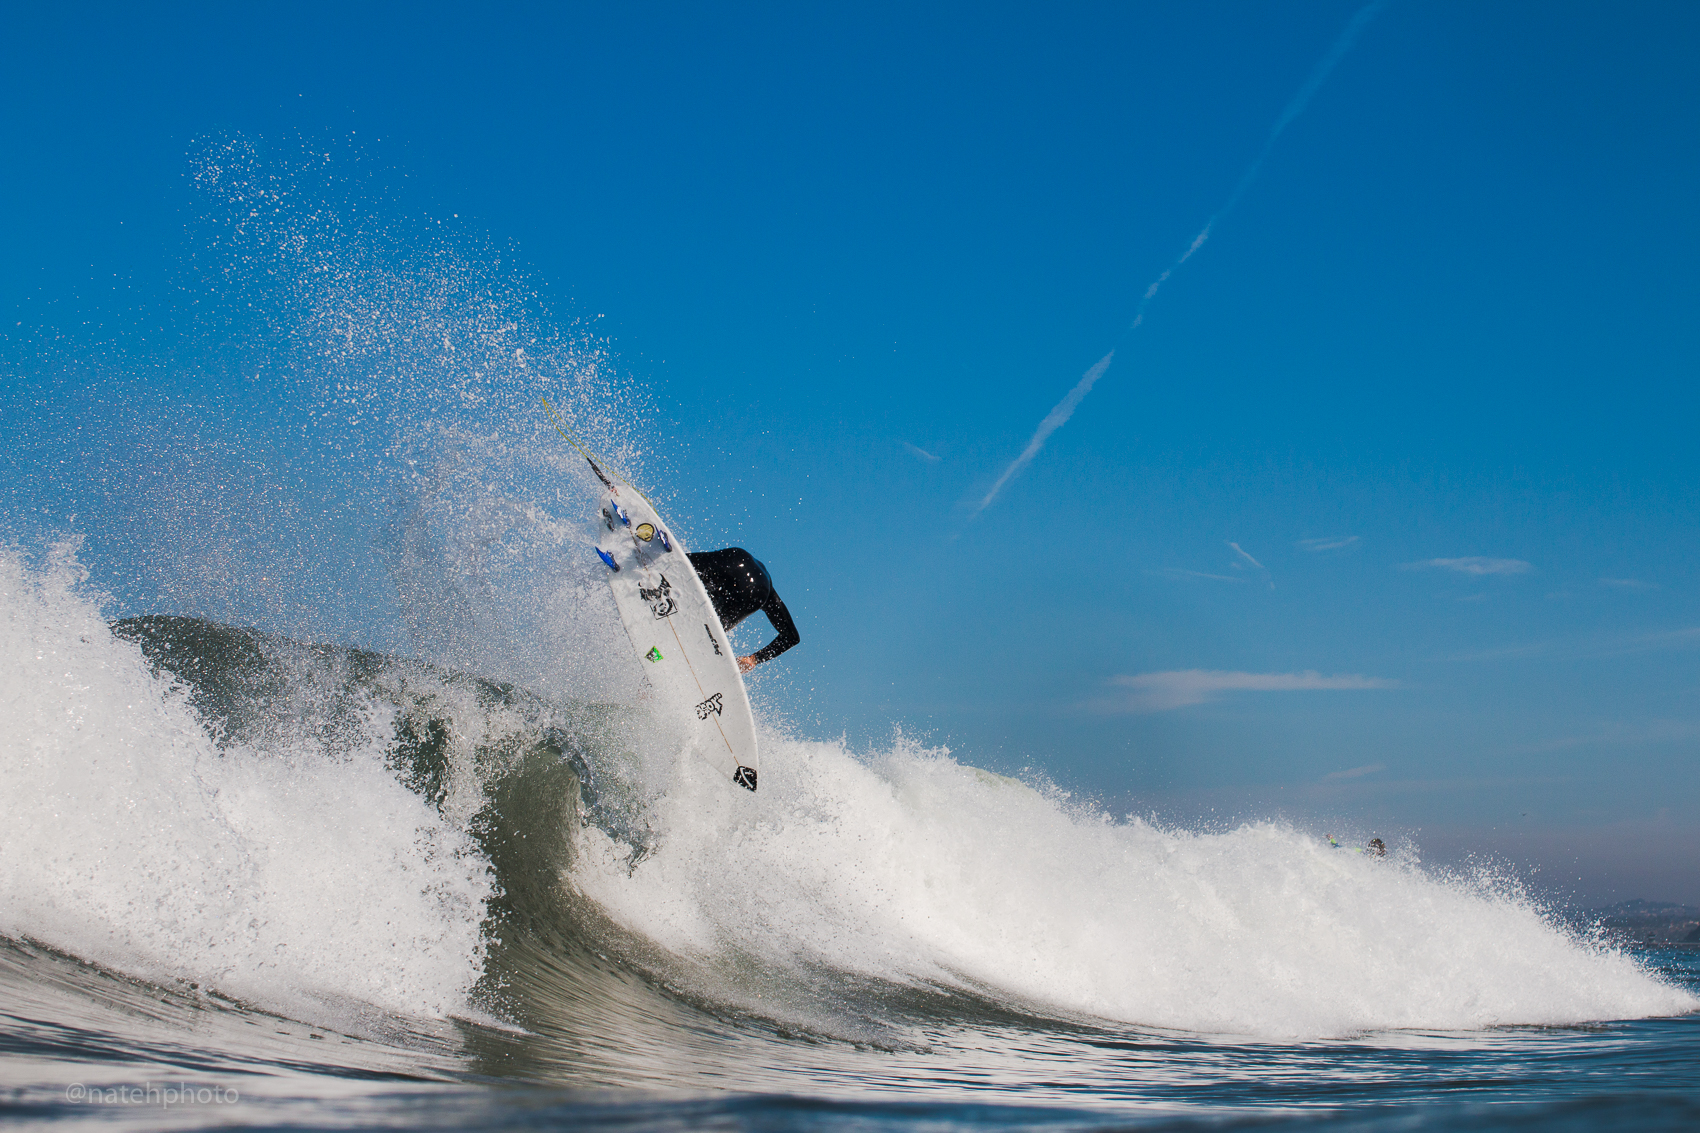 Evan Brownell throwing it up in a punchy beach break. This North Florida surfer rips.